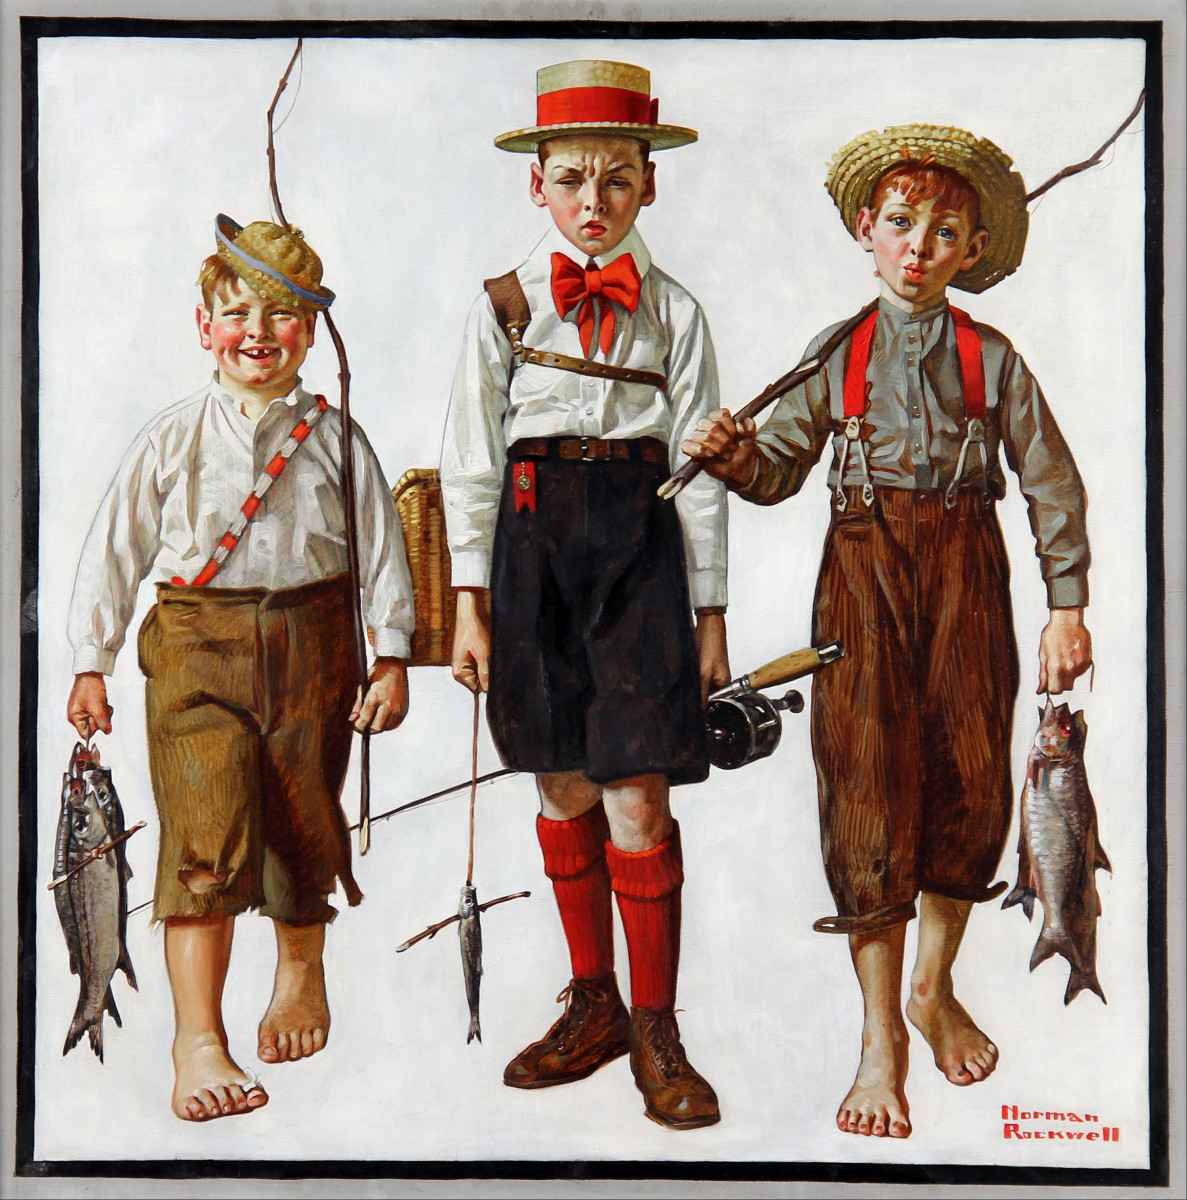 'The Catch' by Norman Rockwell (circa 1919)